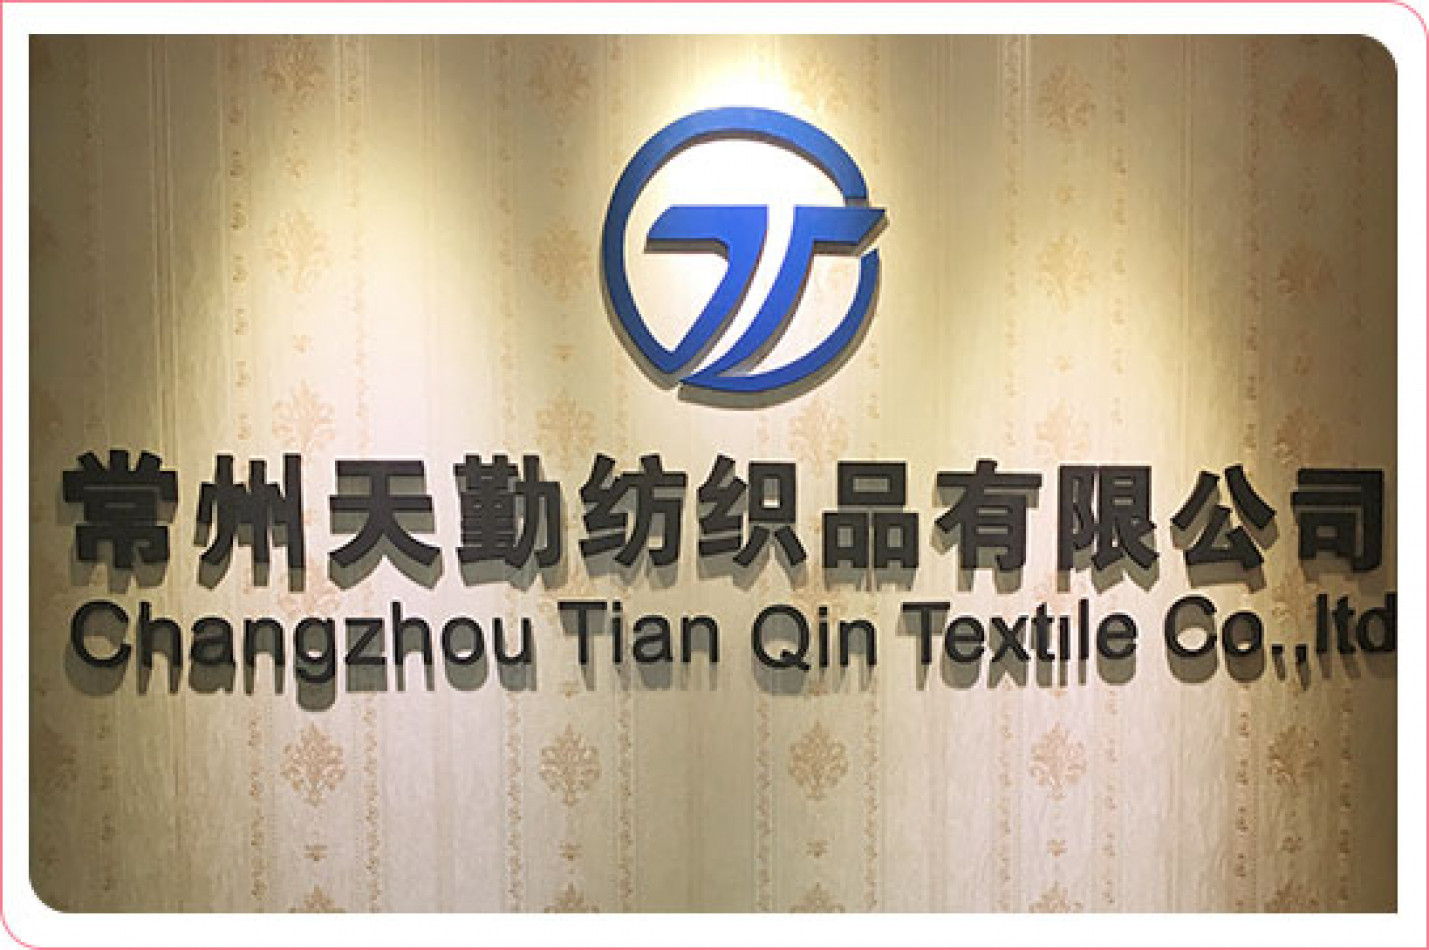 Changzhou Tian Qin Textile Co.,ltd